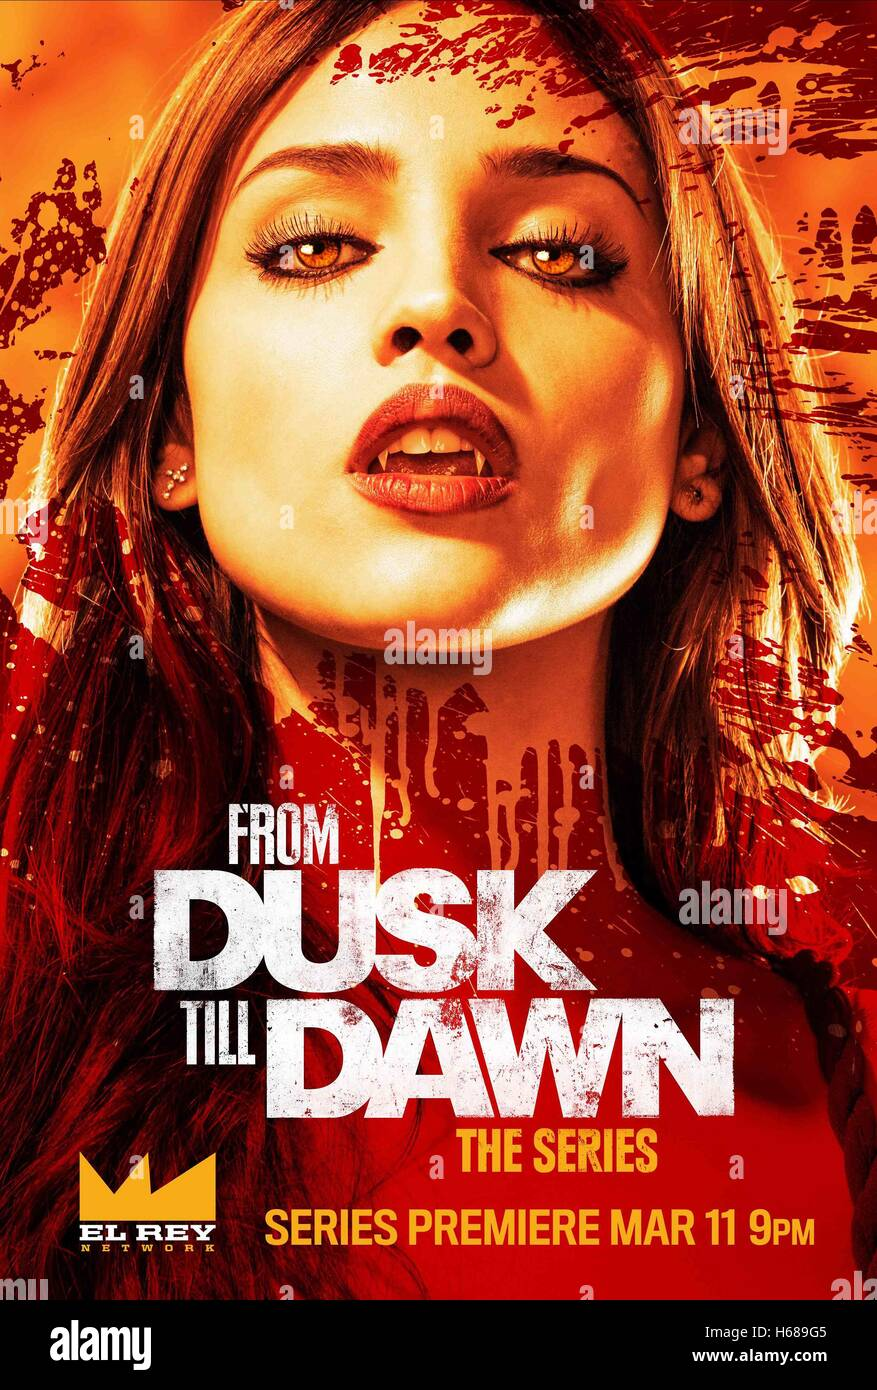 MOVIE POSTER FROM DUSK TILL DAWN; FROM DUSK TILL DAWN: THE SERIES (2014) - Stock Image